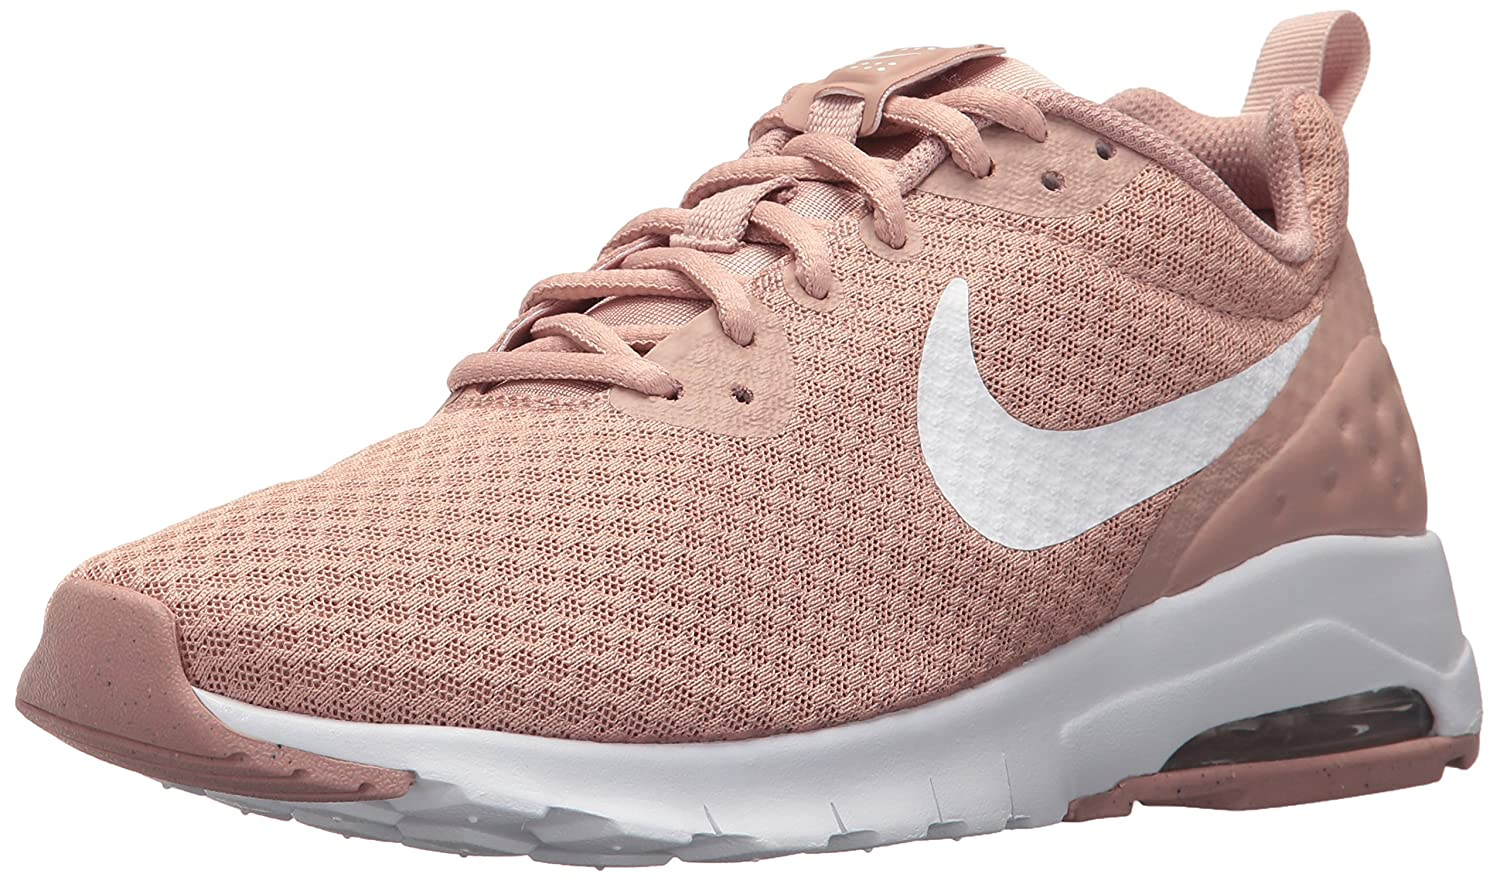 NIKE Women's Air Max Motion Lw Running Shoe B06X6BLQY8 5 B(M) US|Particle Pink/White